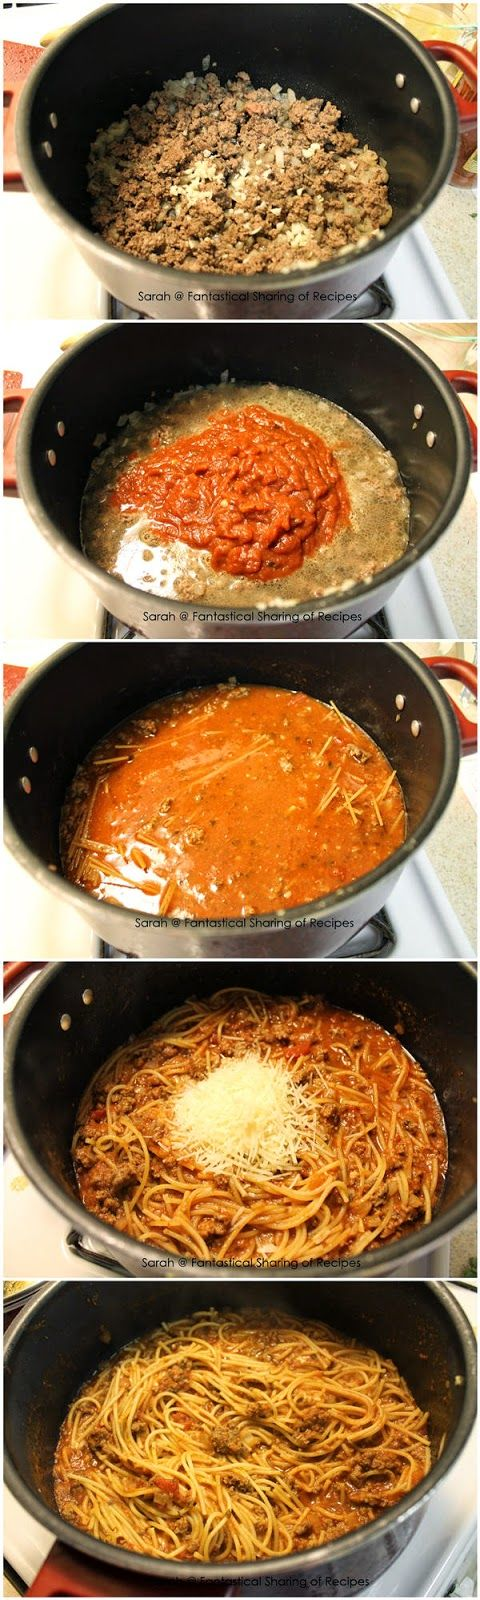 One Pot Spaghetti- had this at a friend's house and it was awesome! Also, you can freeze the leftovers for later!